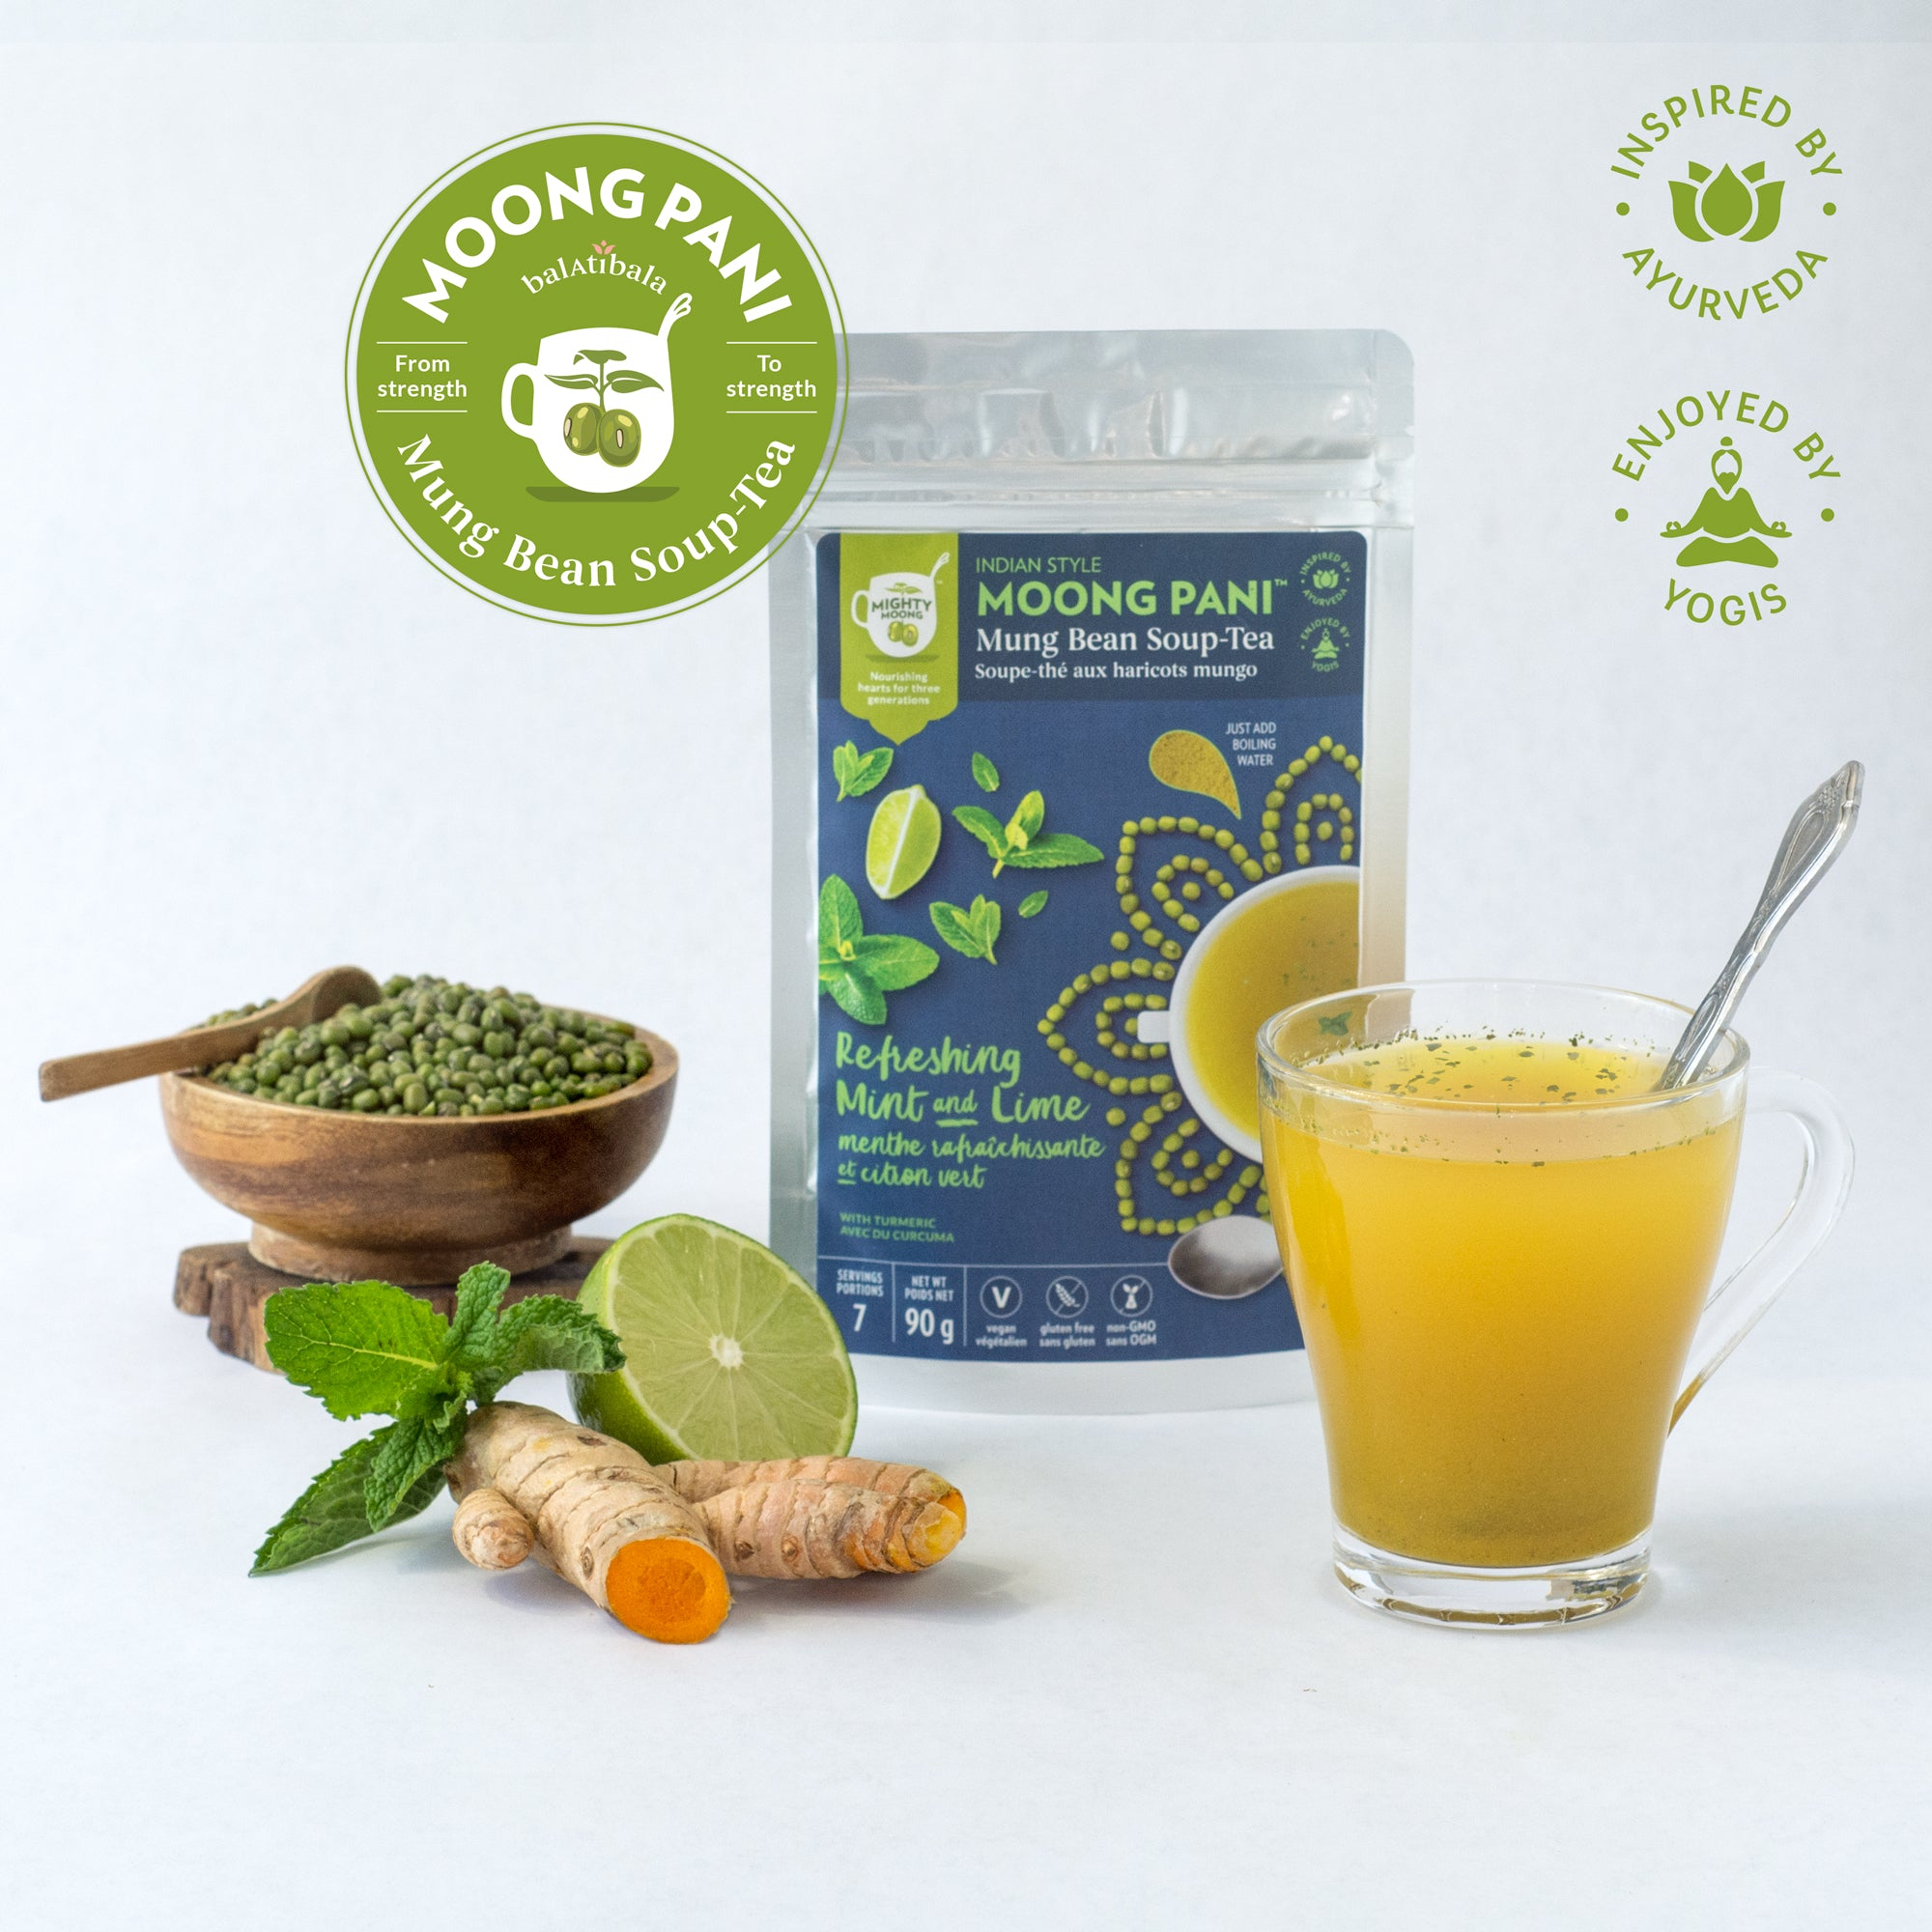 Refreshing Mint and Lime with Turmeric - 7 servings